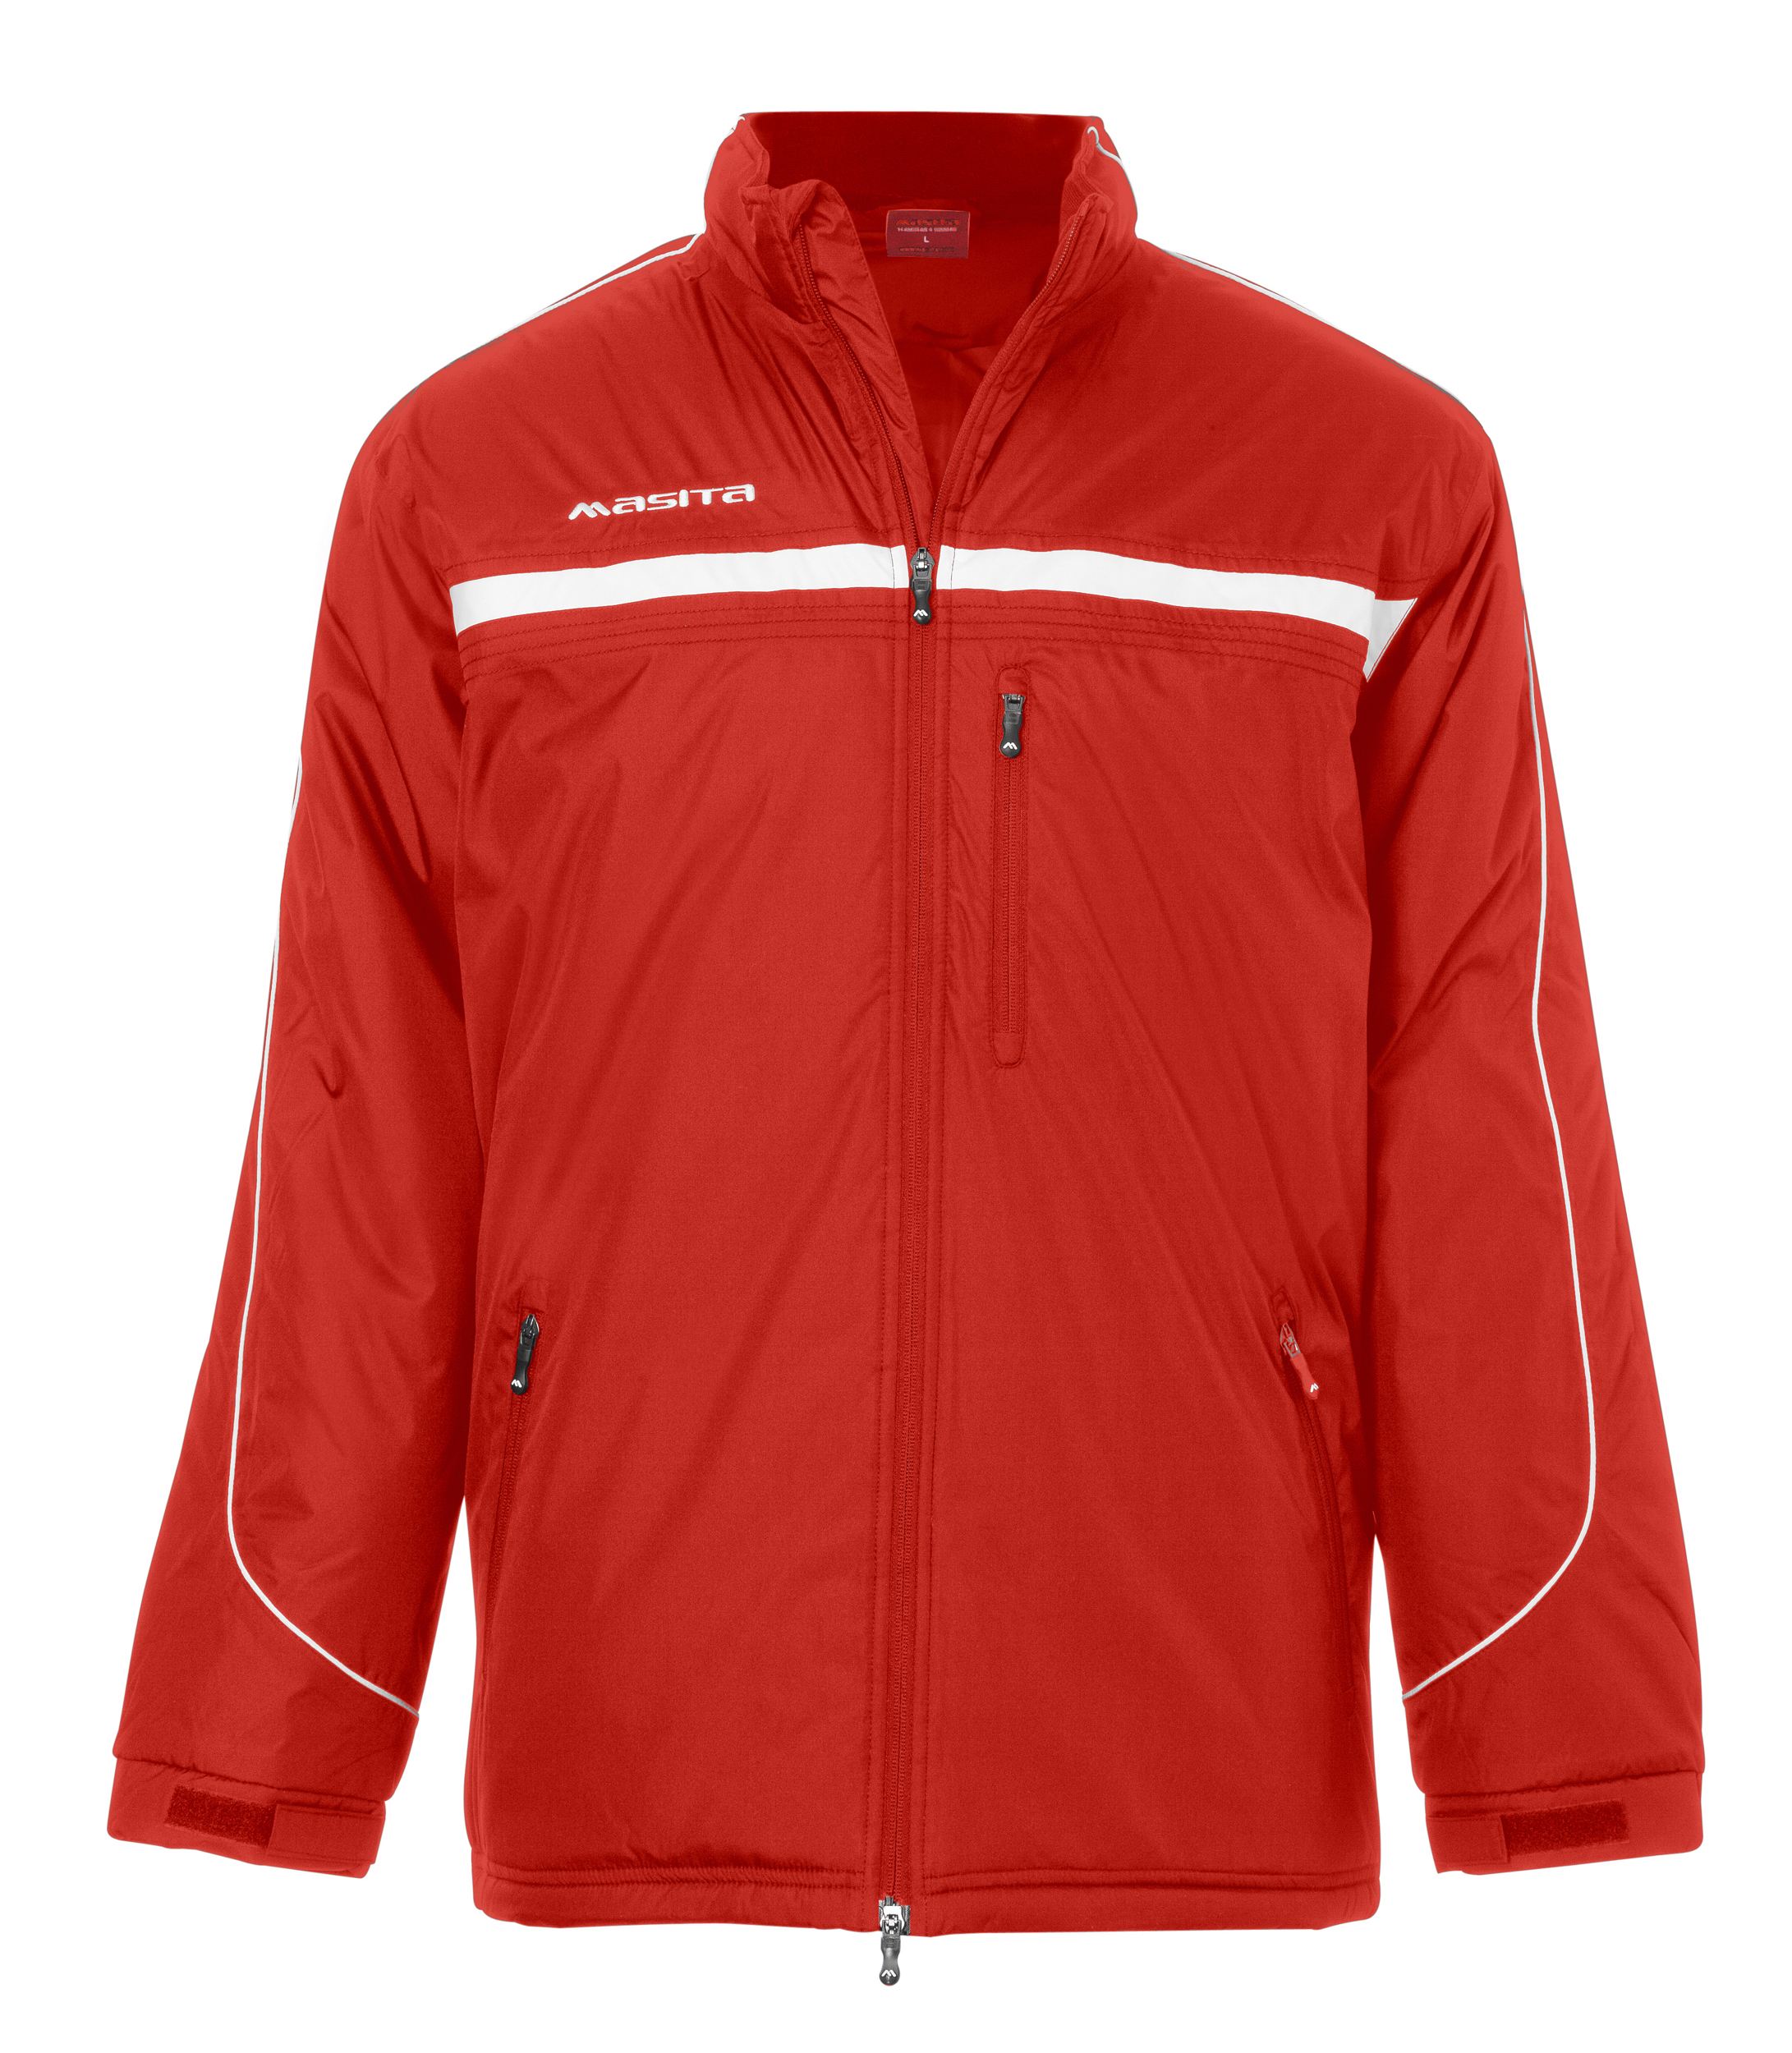 Coach-Jacket Brasil  Red / White